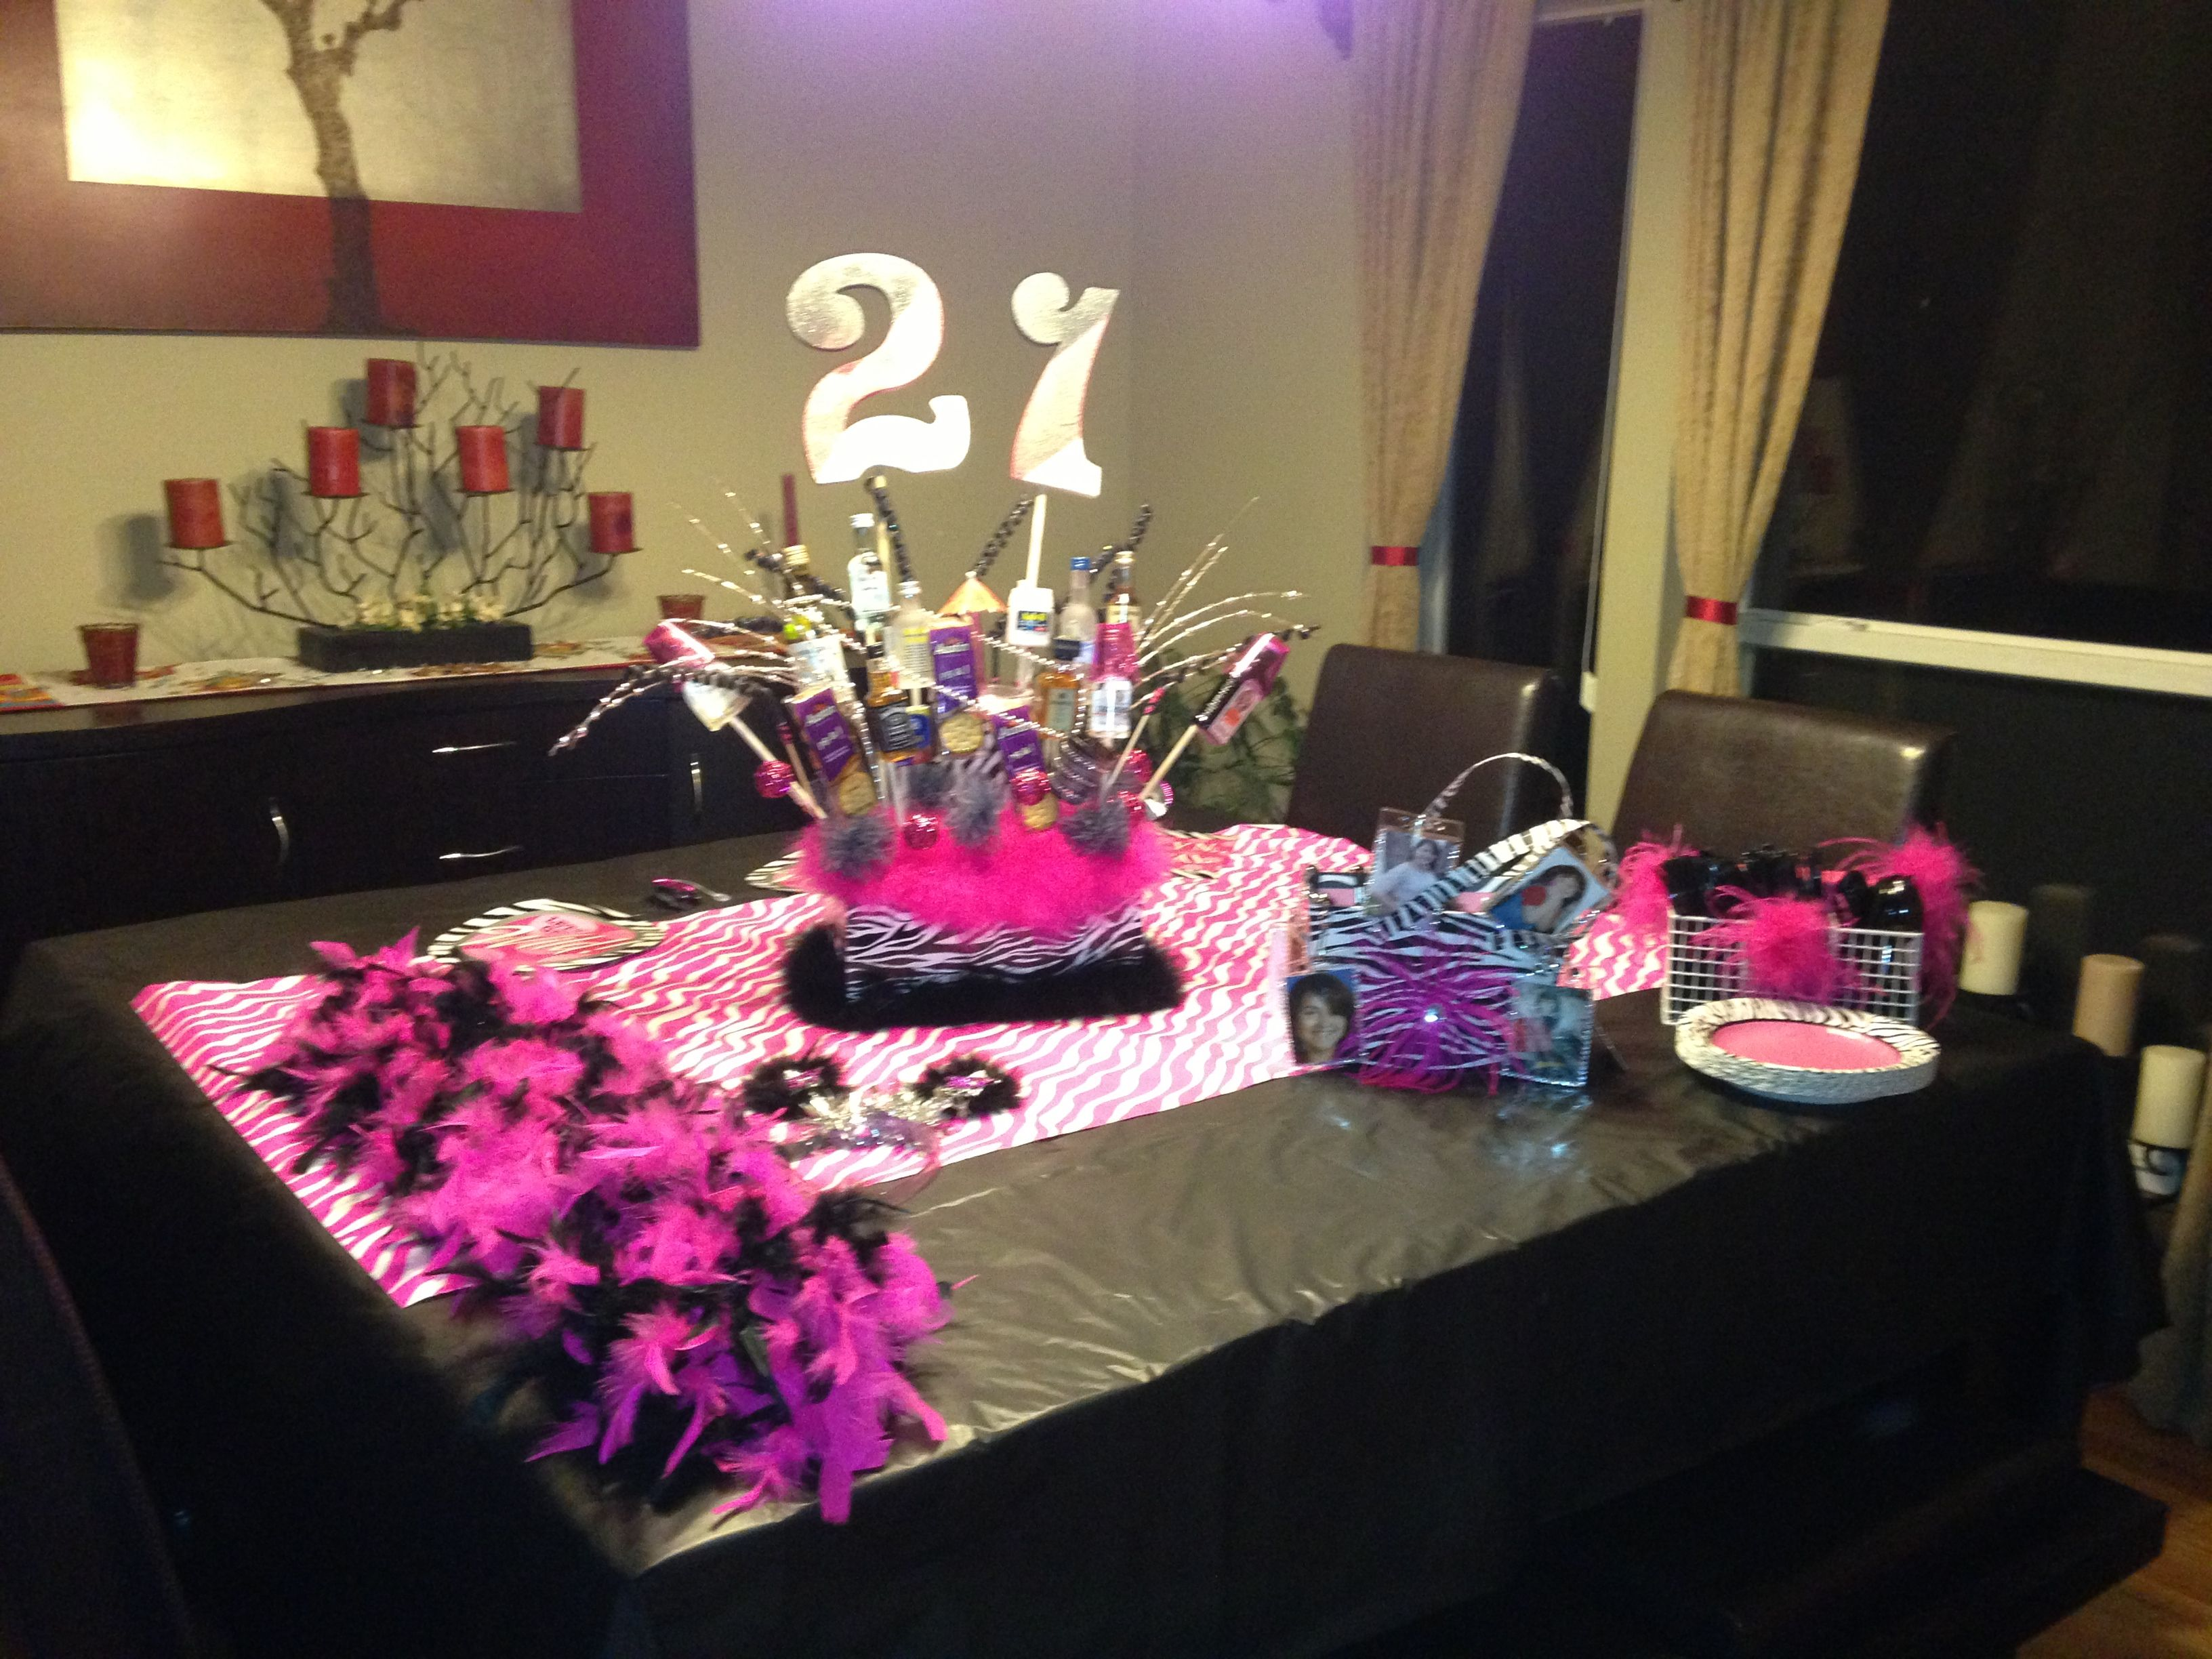 21st Birthday Party Table Setup 21st Birthday Party Decor 21st